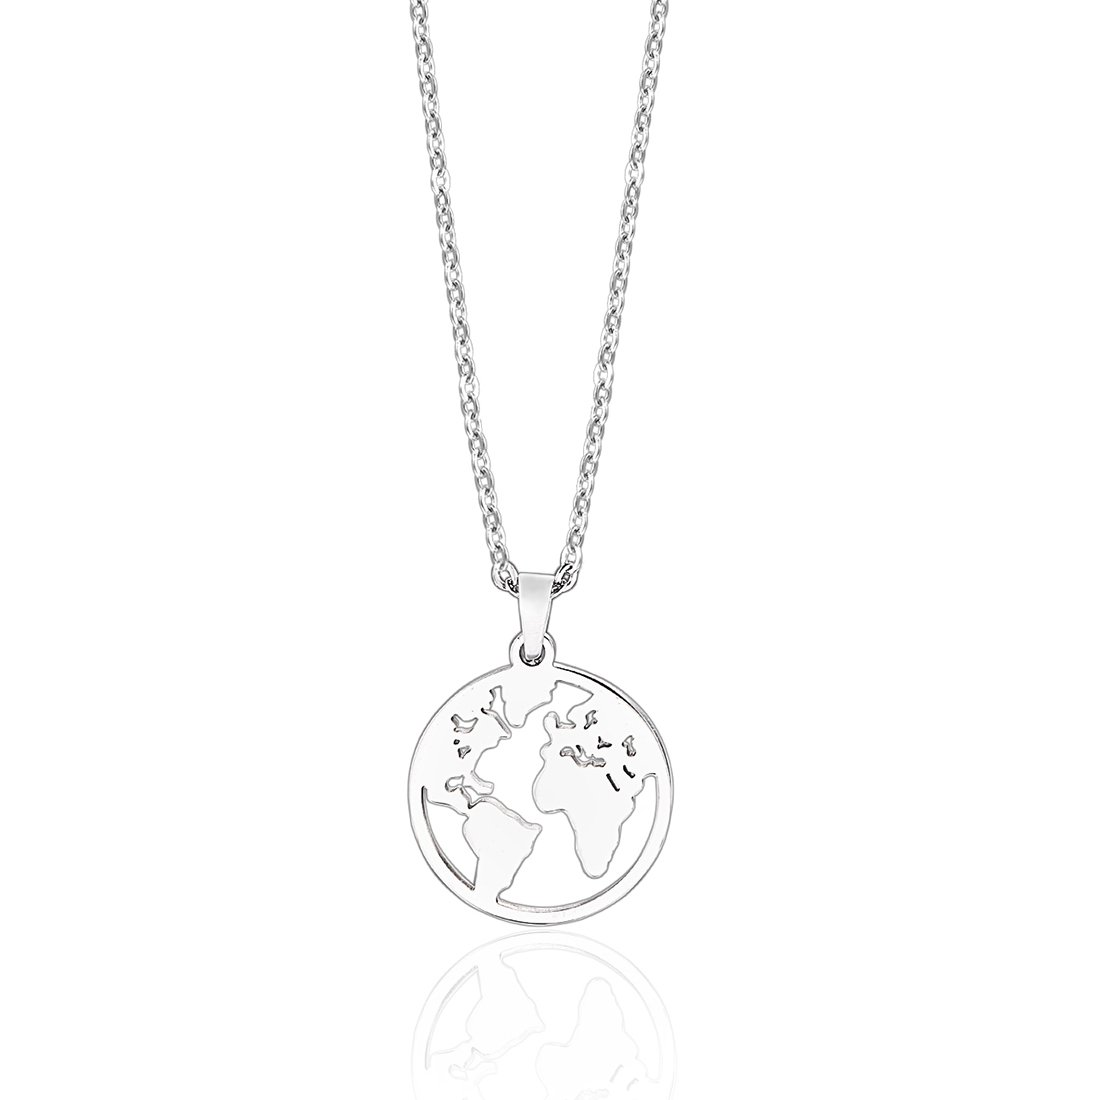 Anlive World Map Necklace Mother Earth Necklace Long Distance Travel Gift (Silver)